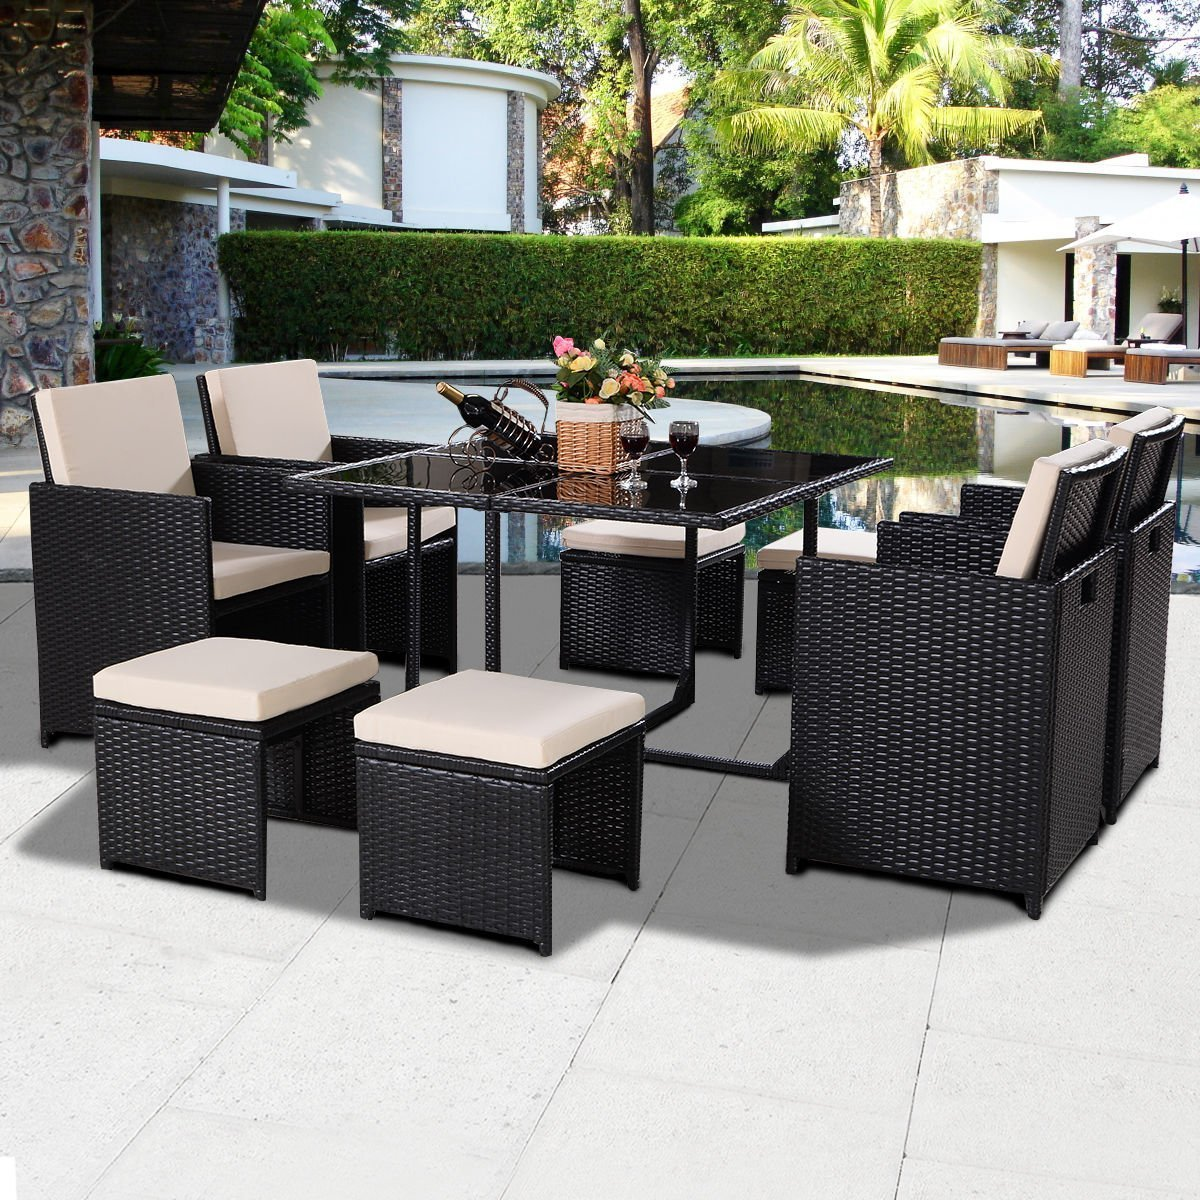 Tangkula 9 PCS Black Patio Garden Rattan Wicker Sofa Set Furniture Cushioned W/Ottoman (Black)